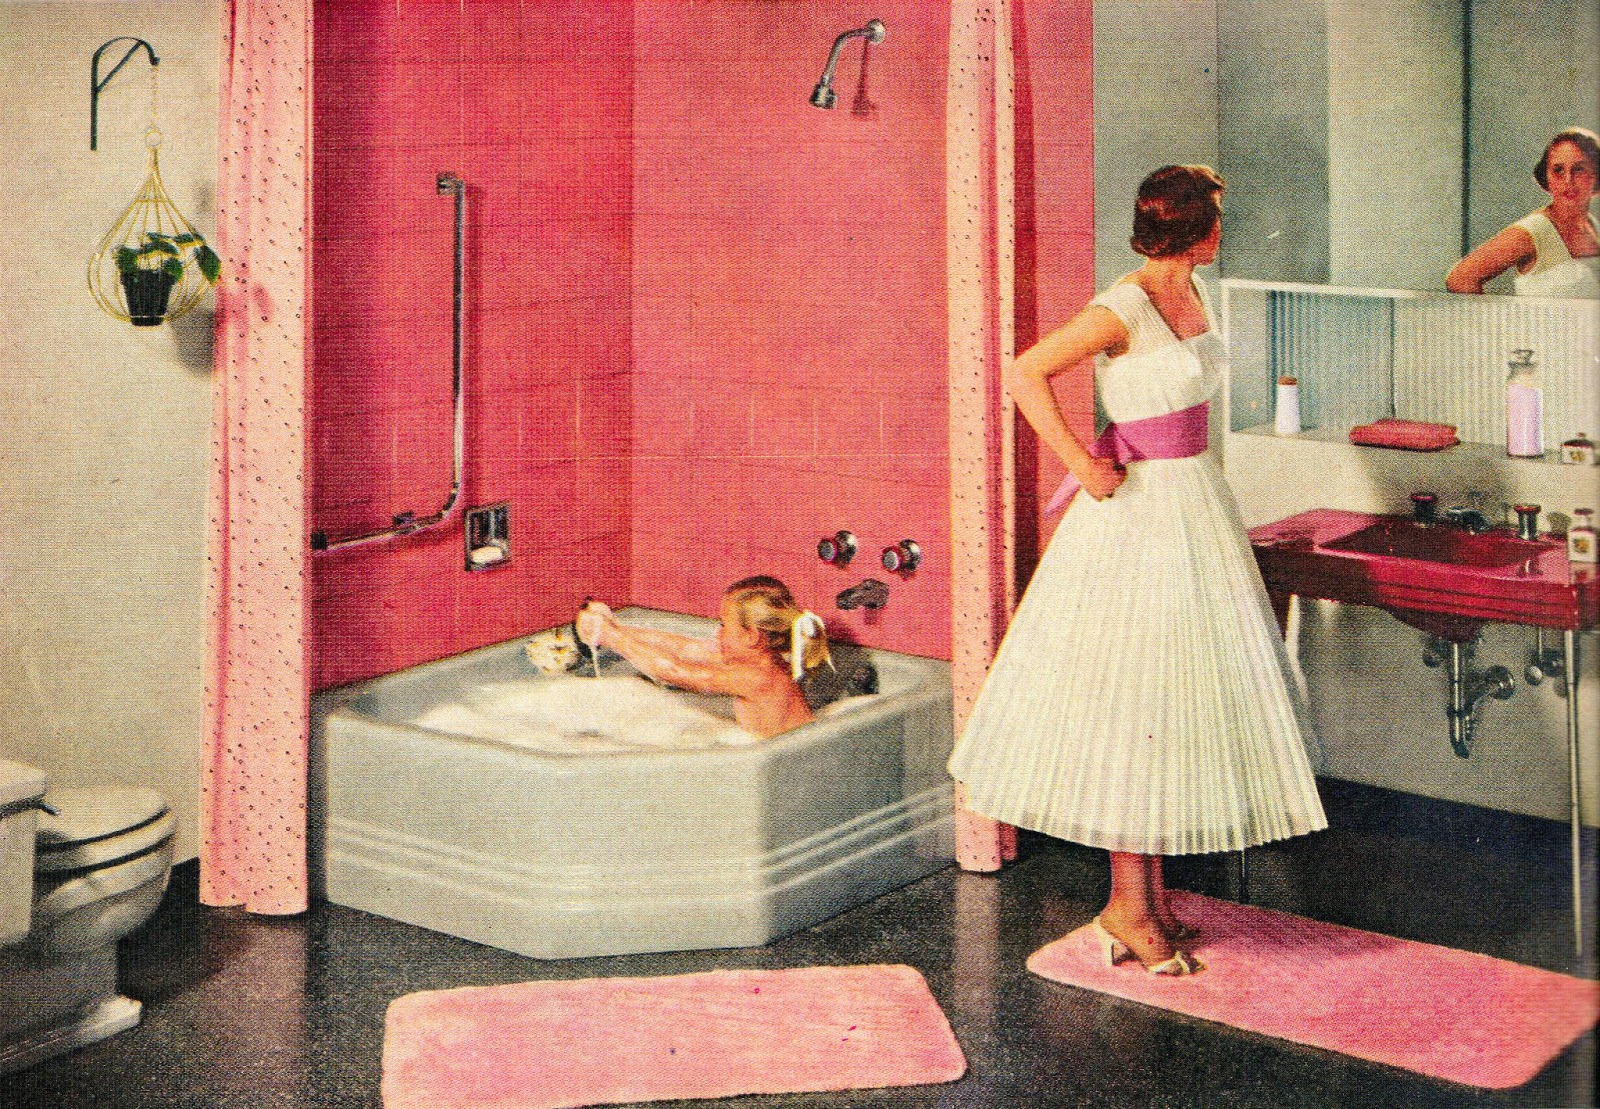 If You Have Your Eye On That Extra Deep Jetted Bathtub May Want To Skip The Designer Paint Colors And Save Some Money